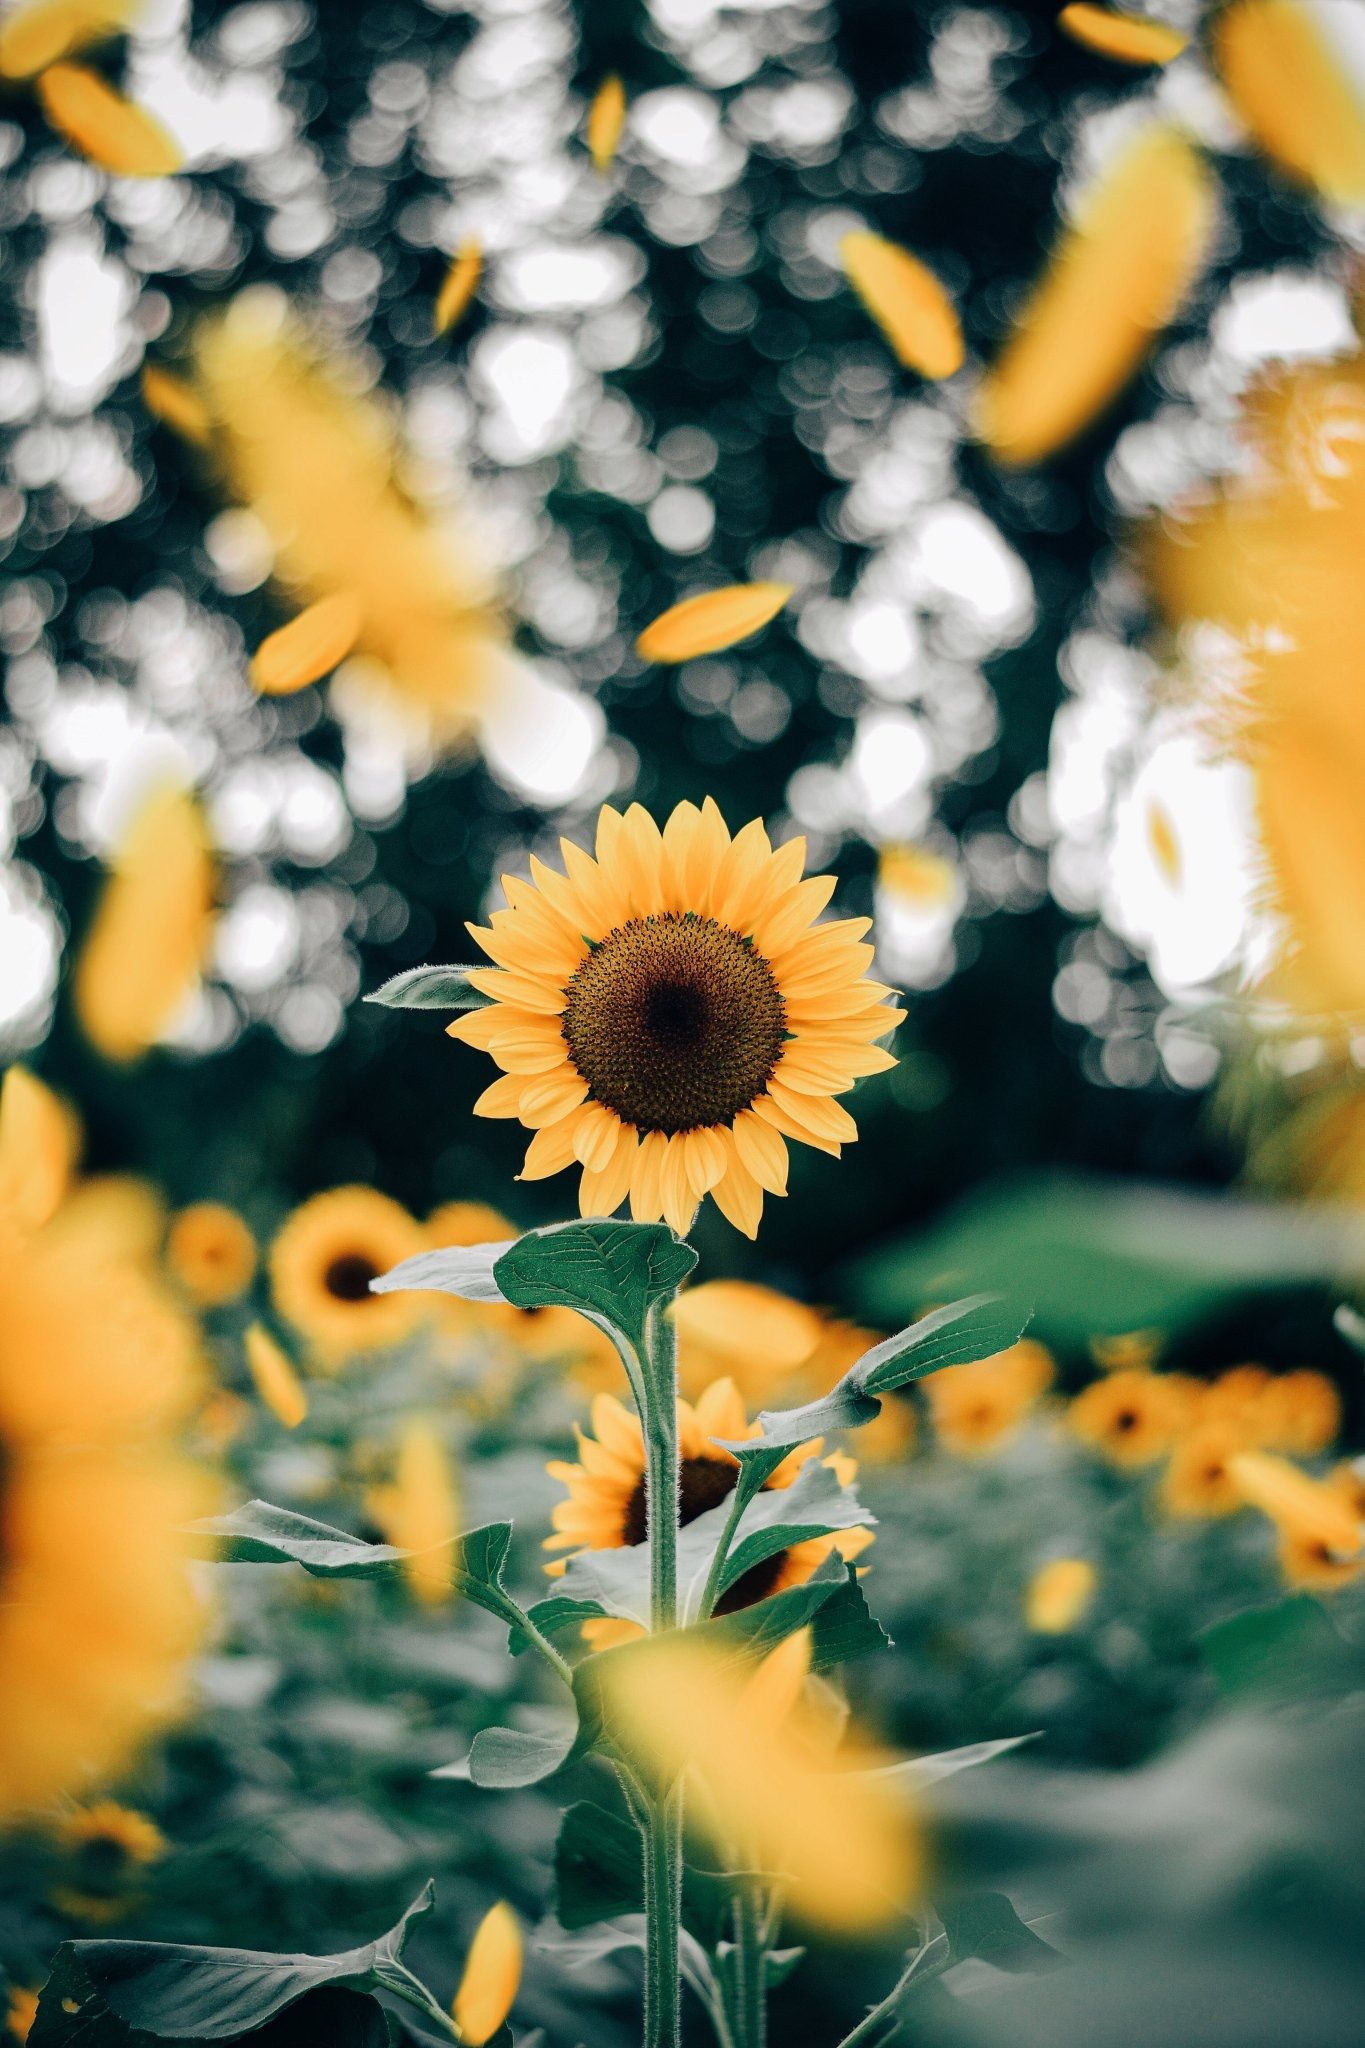 Pin By My Nguyễn On Cute Sunflower Wallpaper Sunflower Photography Flowers Photography